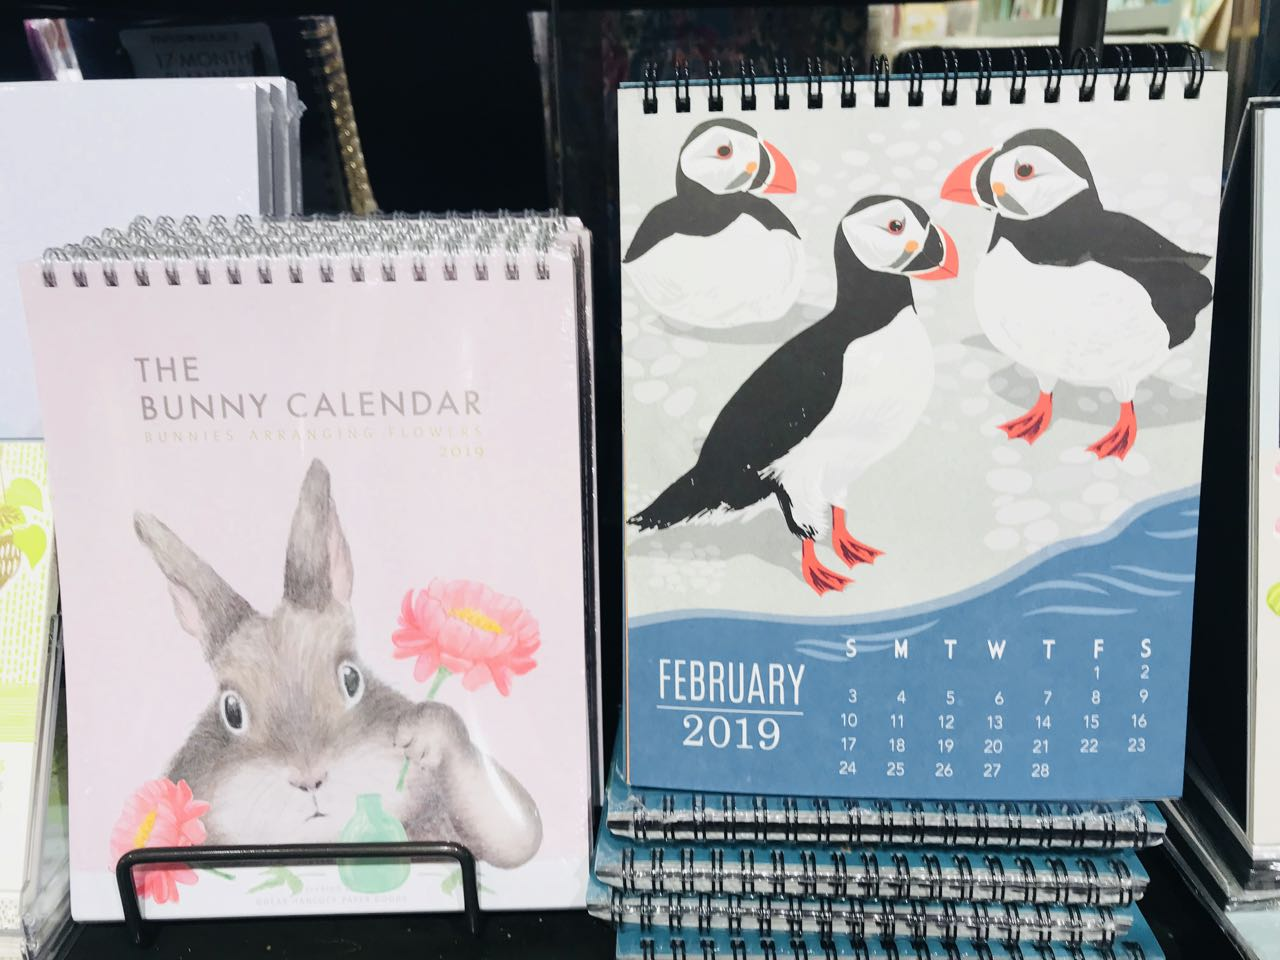 2019 Calendars For Sale 2019 calendars on sale, and selling